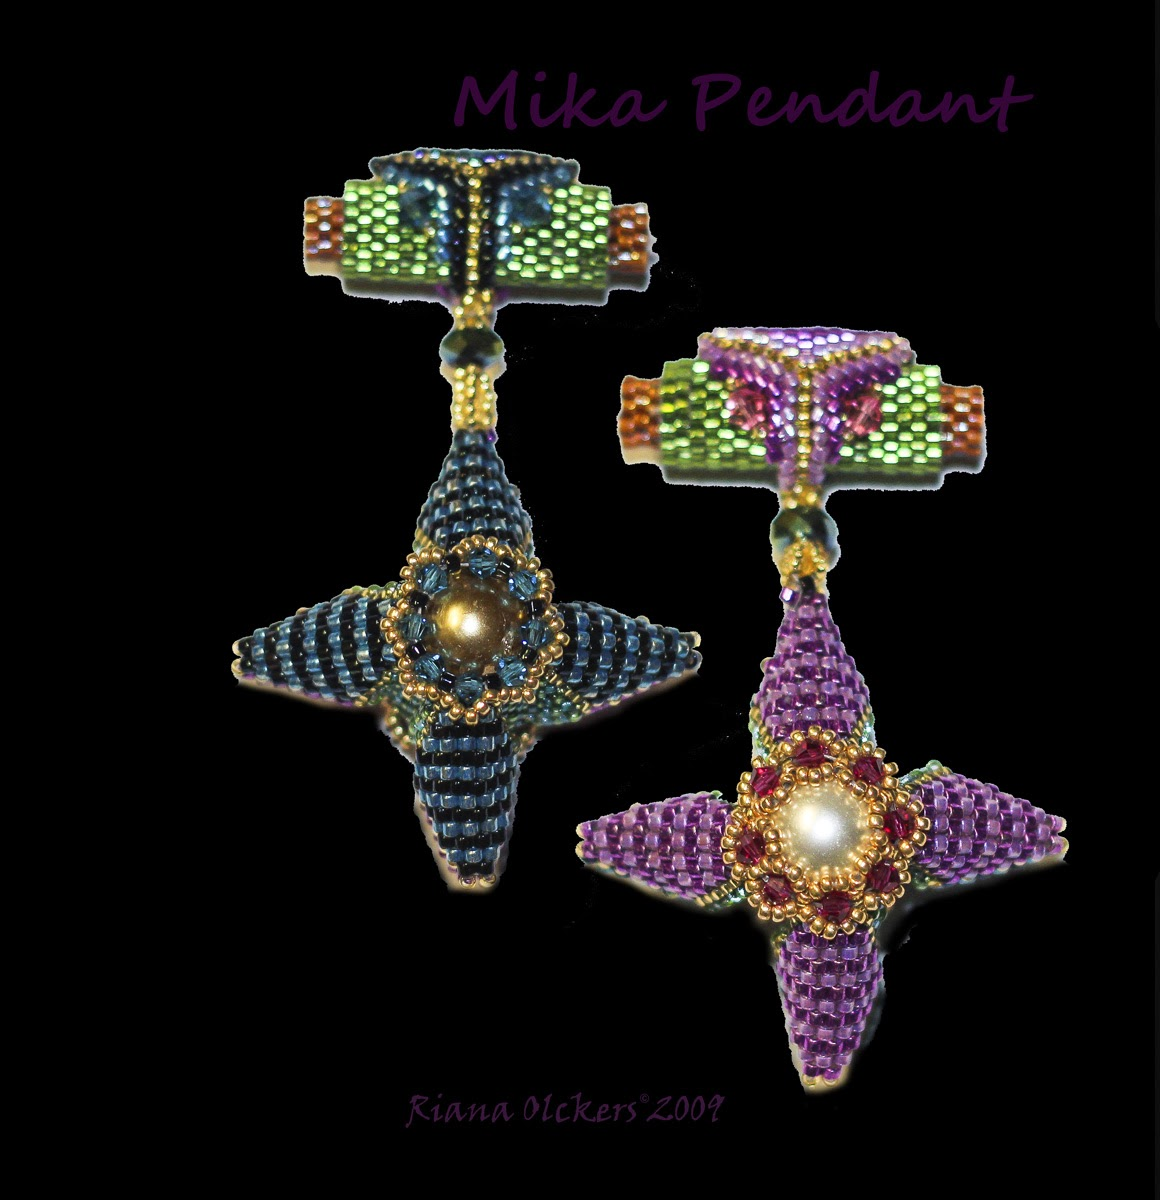 http://www.etsy.com/listing/177755126/mika-pendant-a-bead-weaving-tutorial?ref=shop_home_active_1